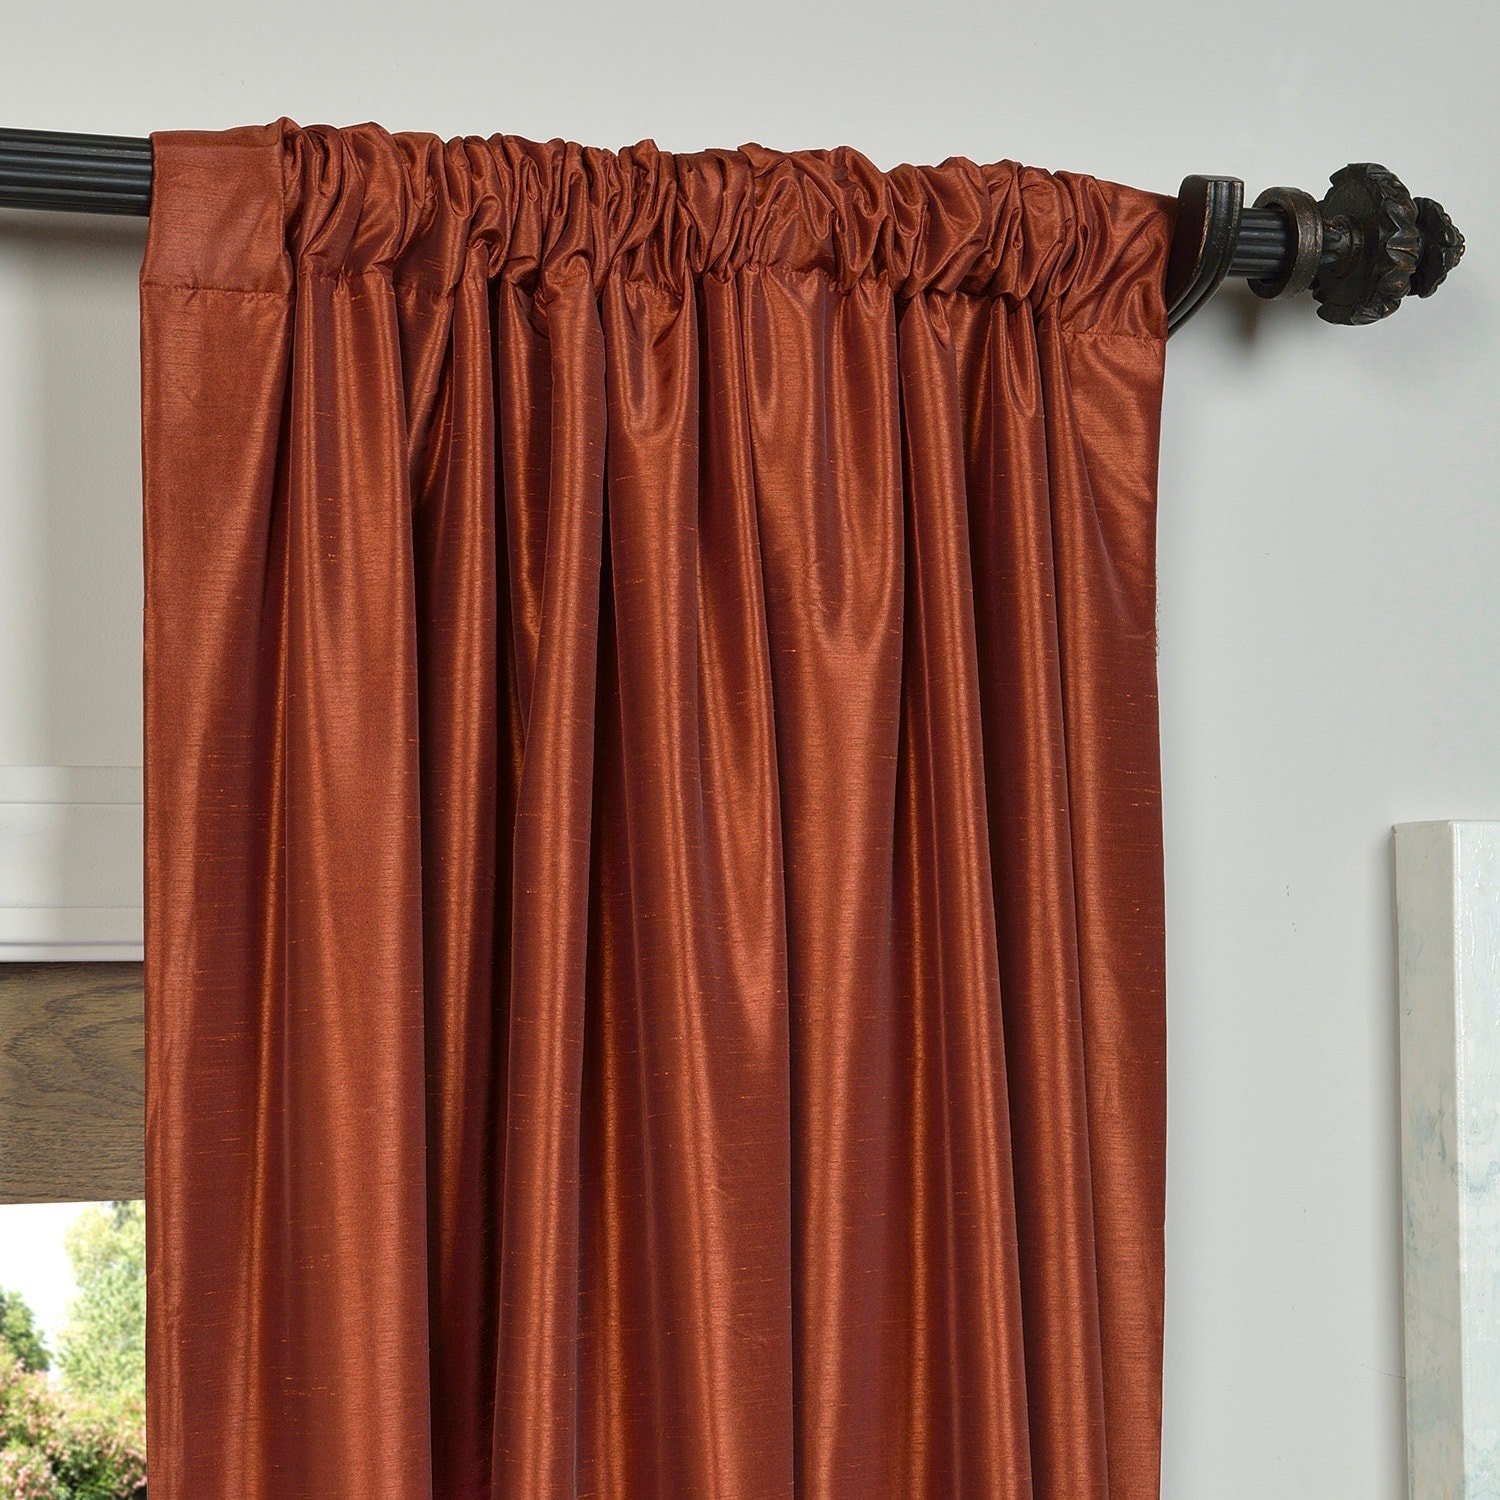 pin set panel curtains ombre ideas curtain panels and gradient orange idea